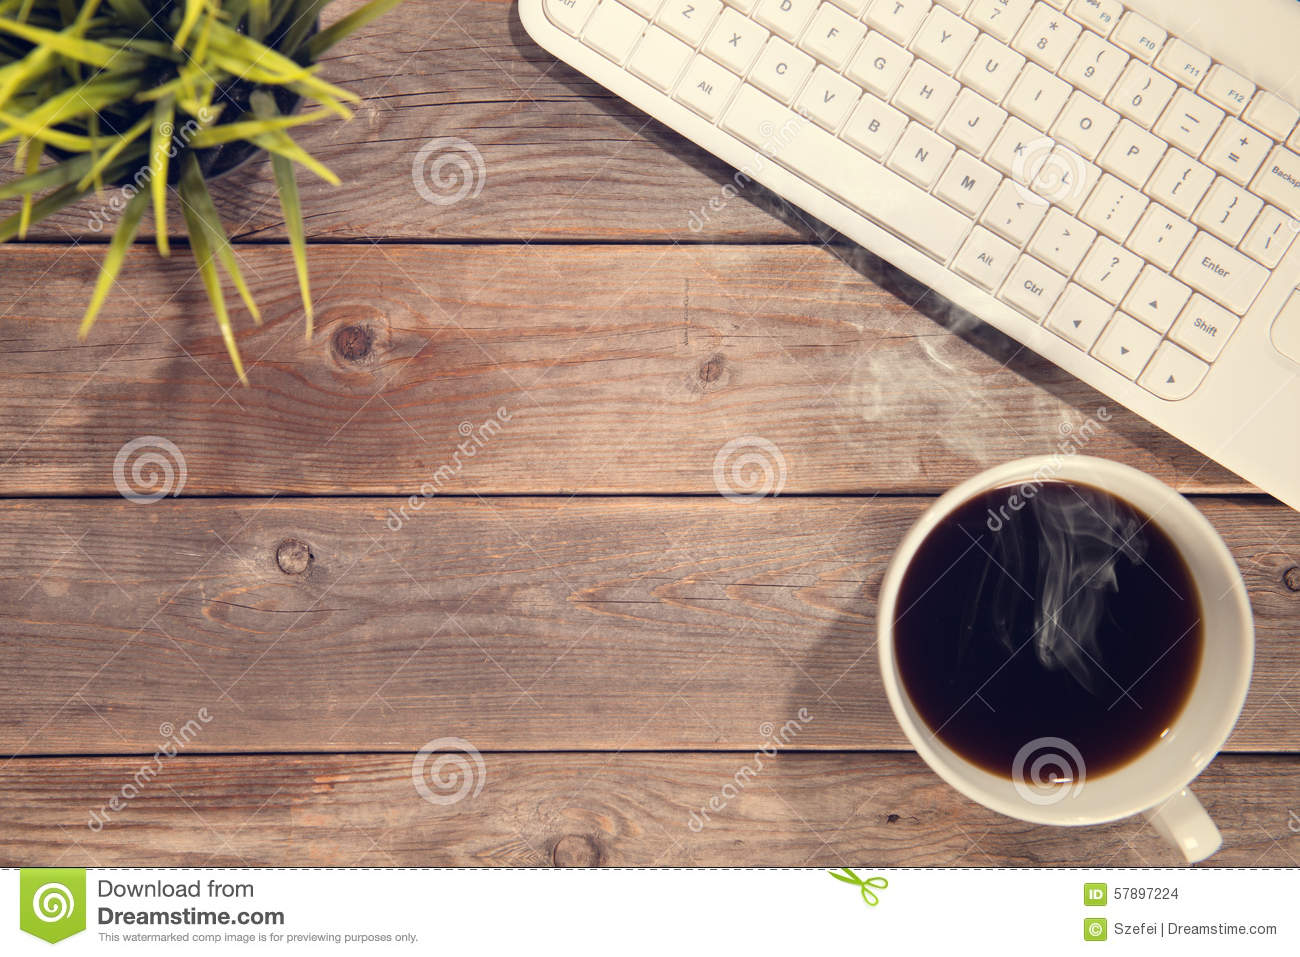 Top View Office Wooden Working Desk Stock Photo Image of design